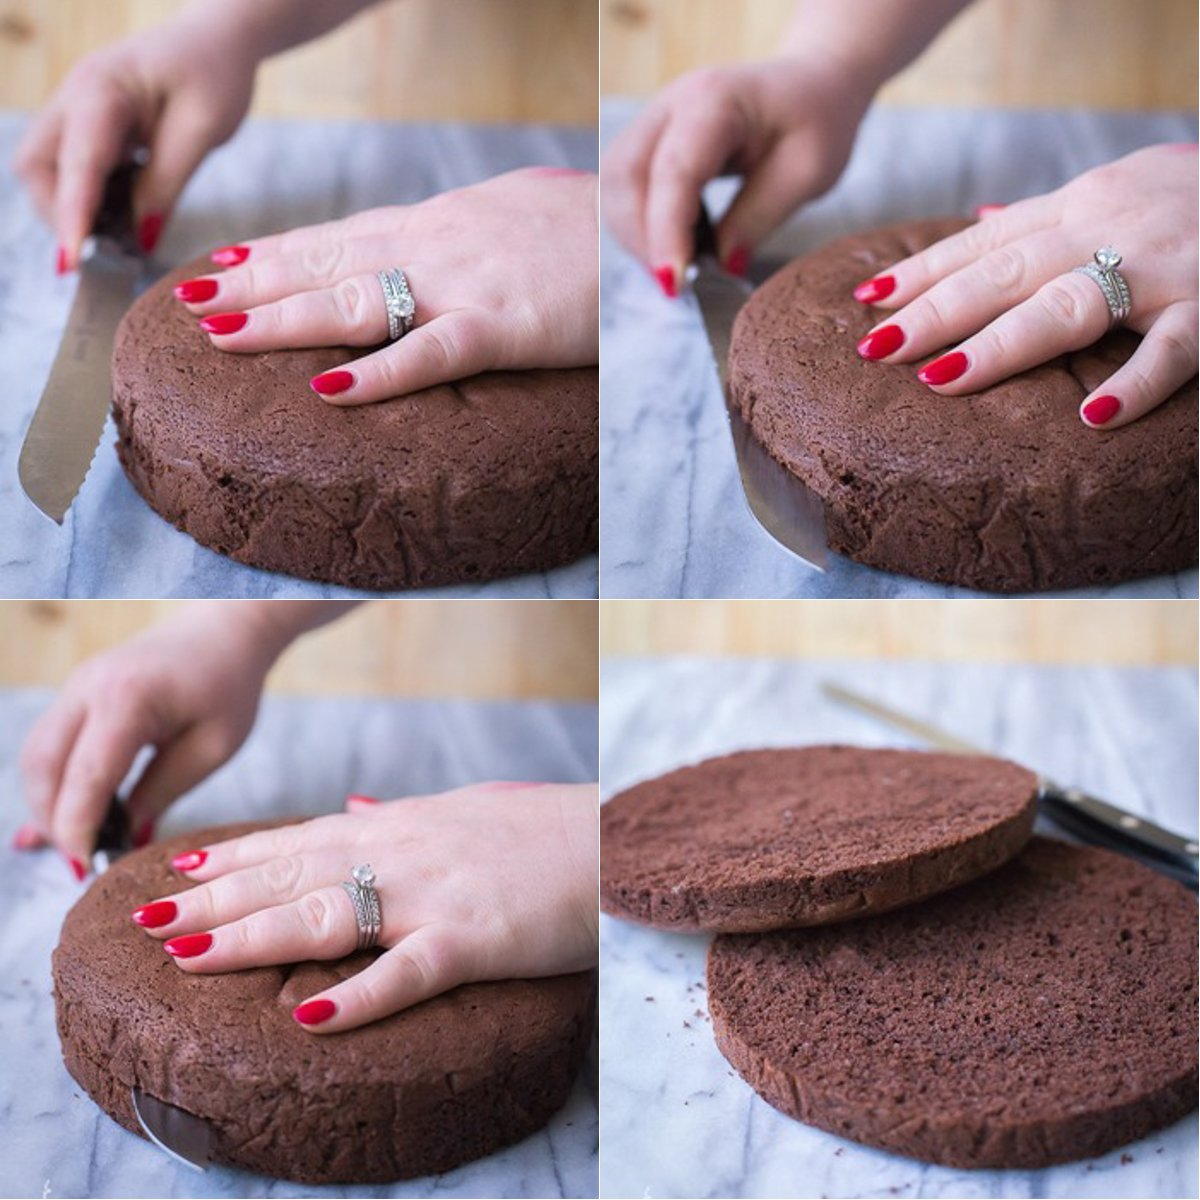 How to Split a Chocolate Sponge Cake